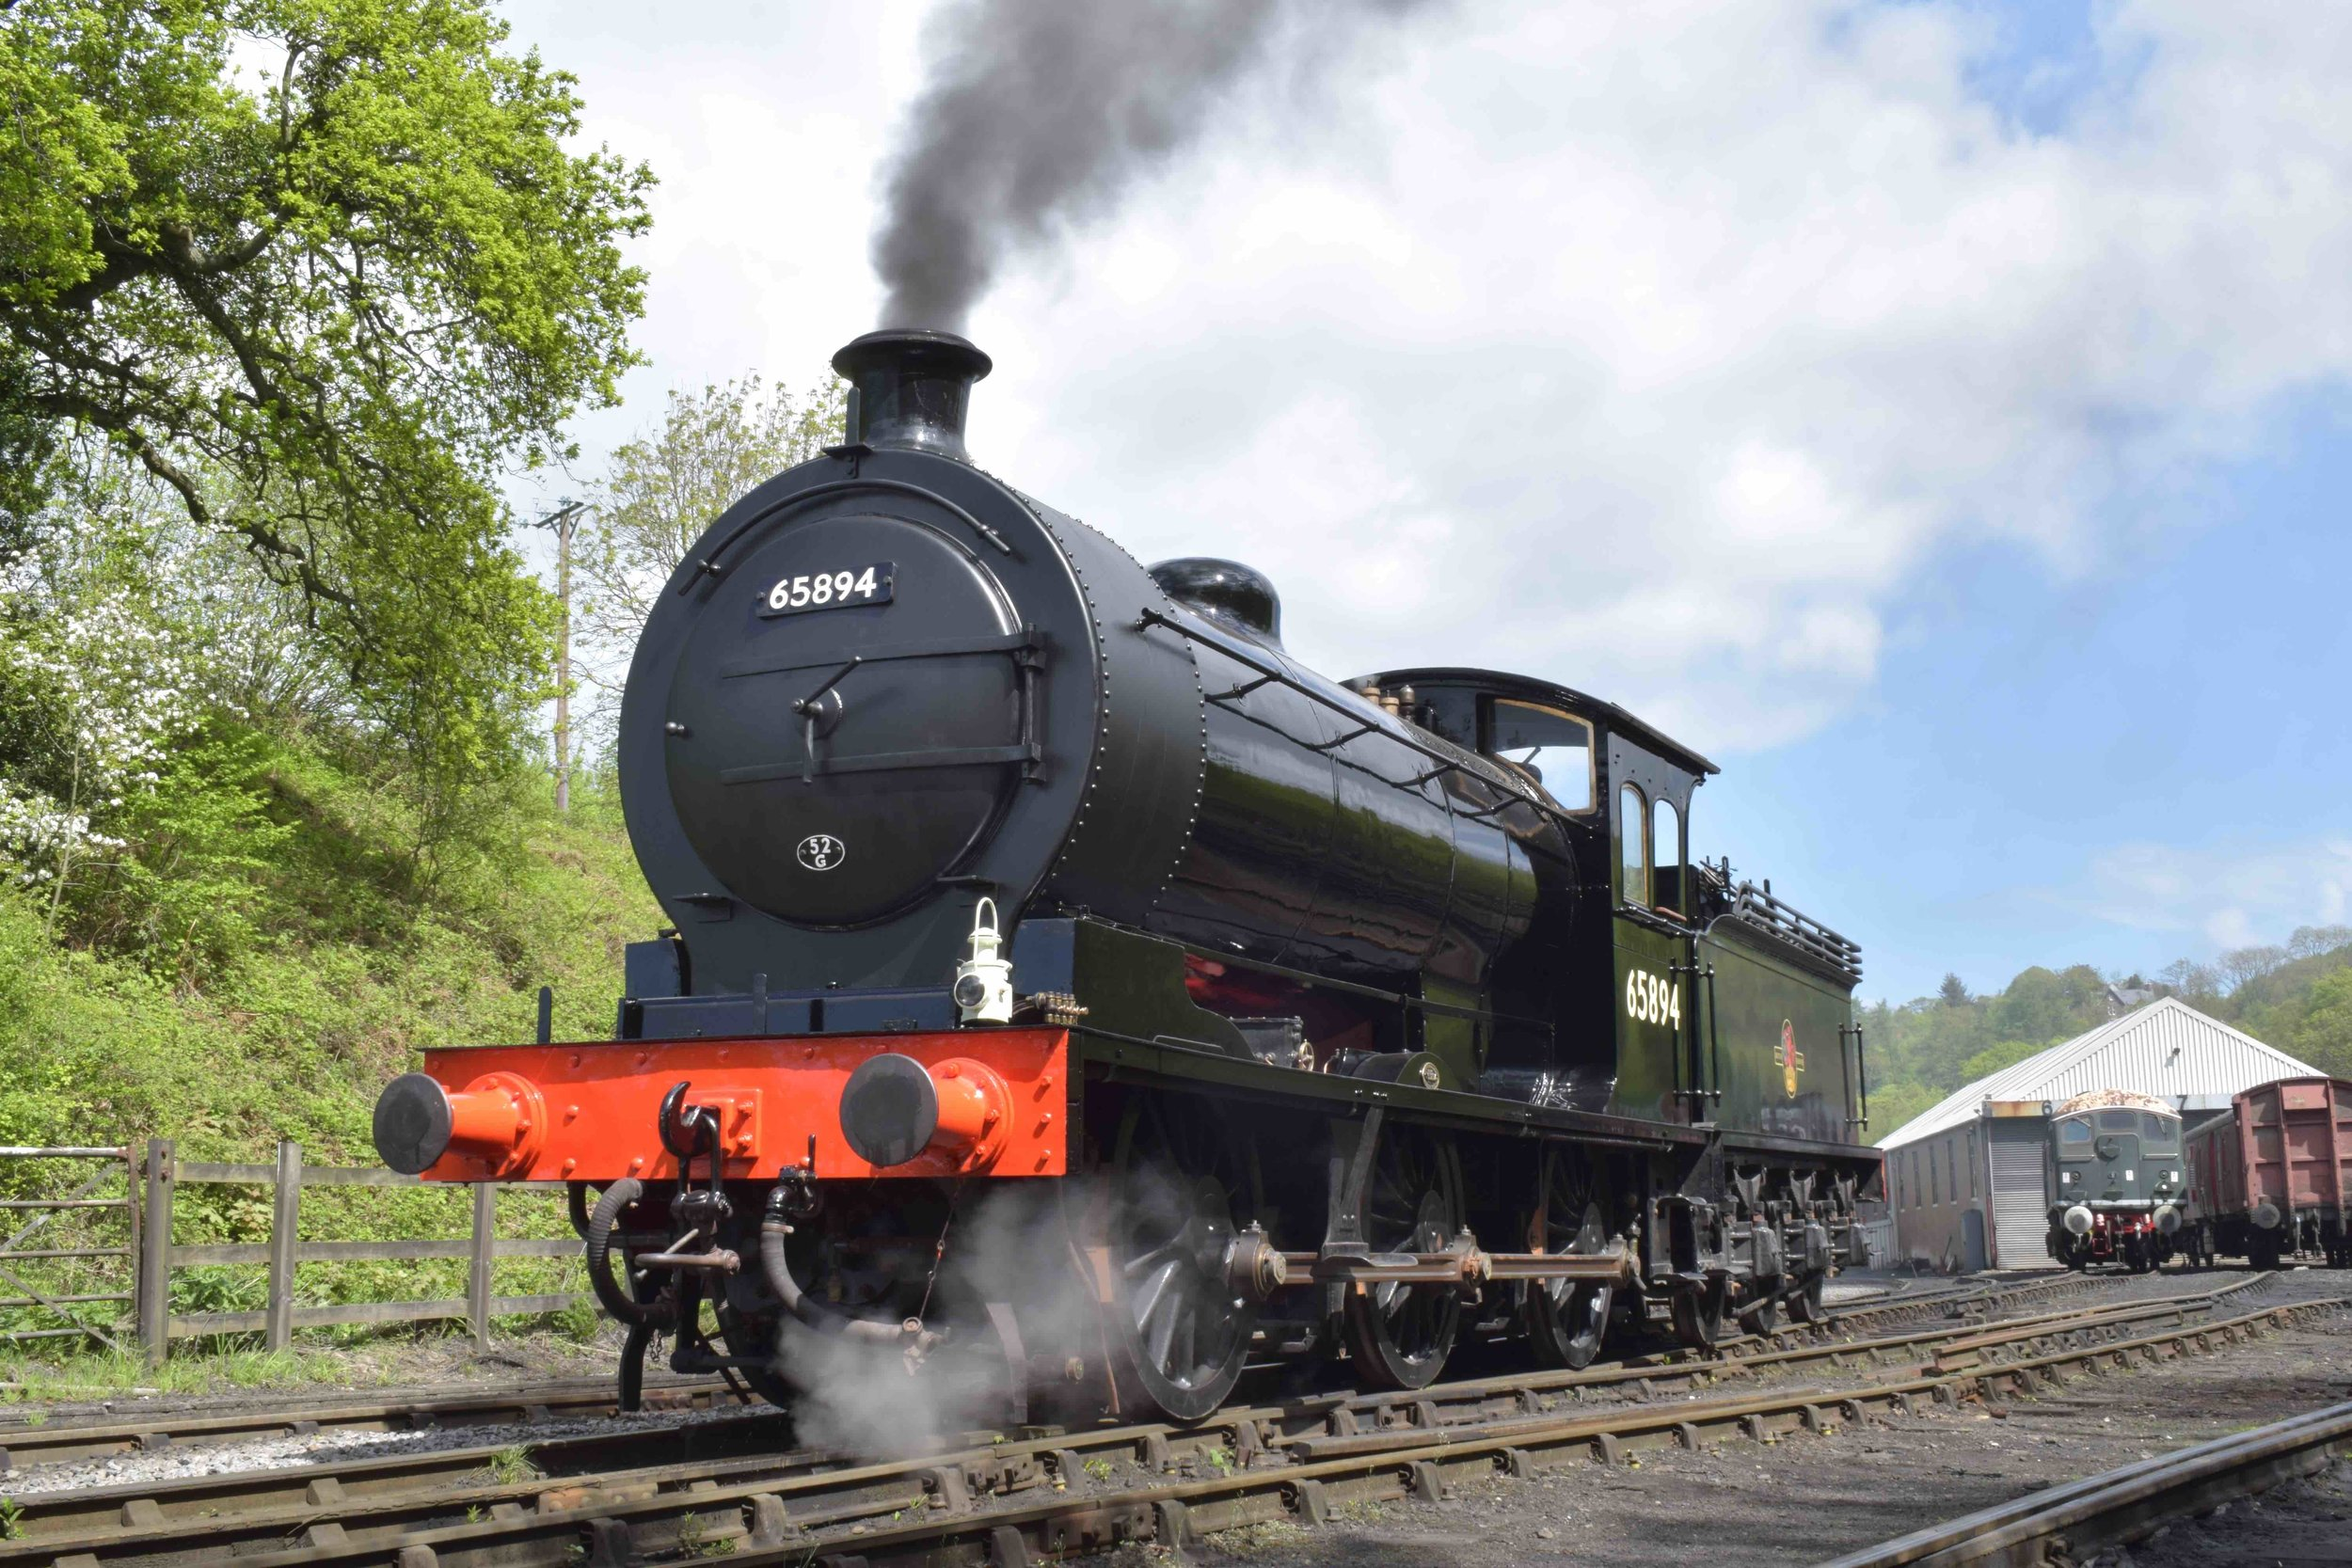 Destined for the Wensleydale Railway this summer, freshly overhauled 'J27' No. 65894 undergoes running-in trials on the North Yorkshire Moors Railway on May 10. THOMAS BRIGHT/SR